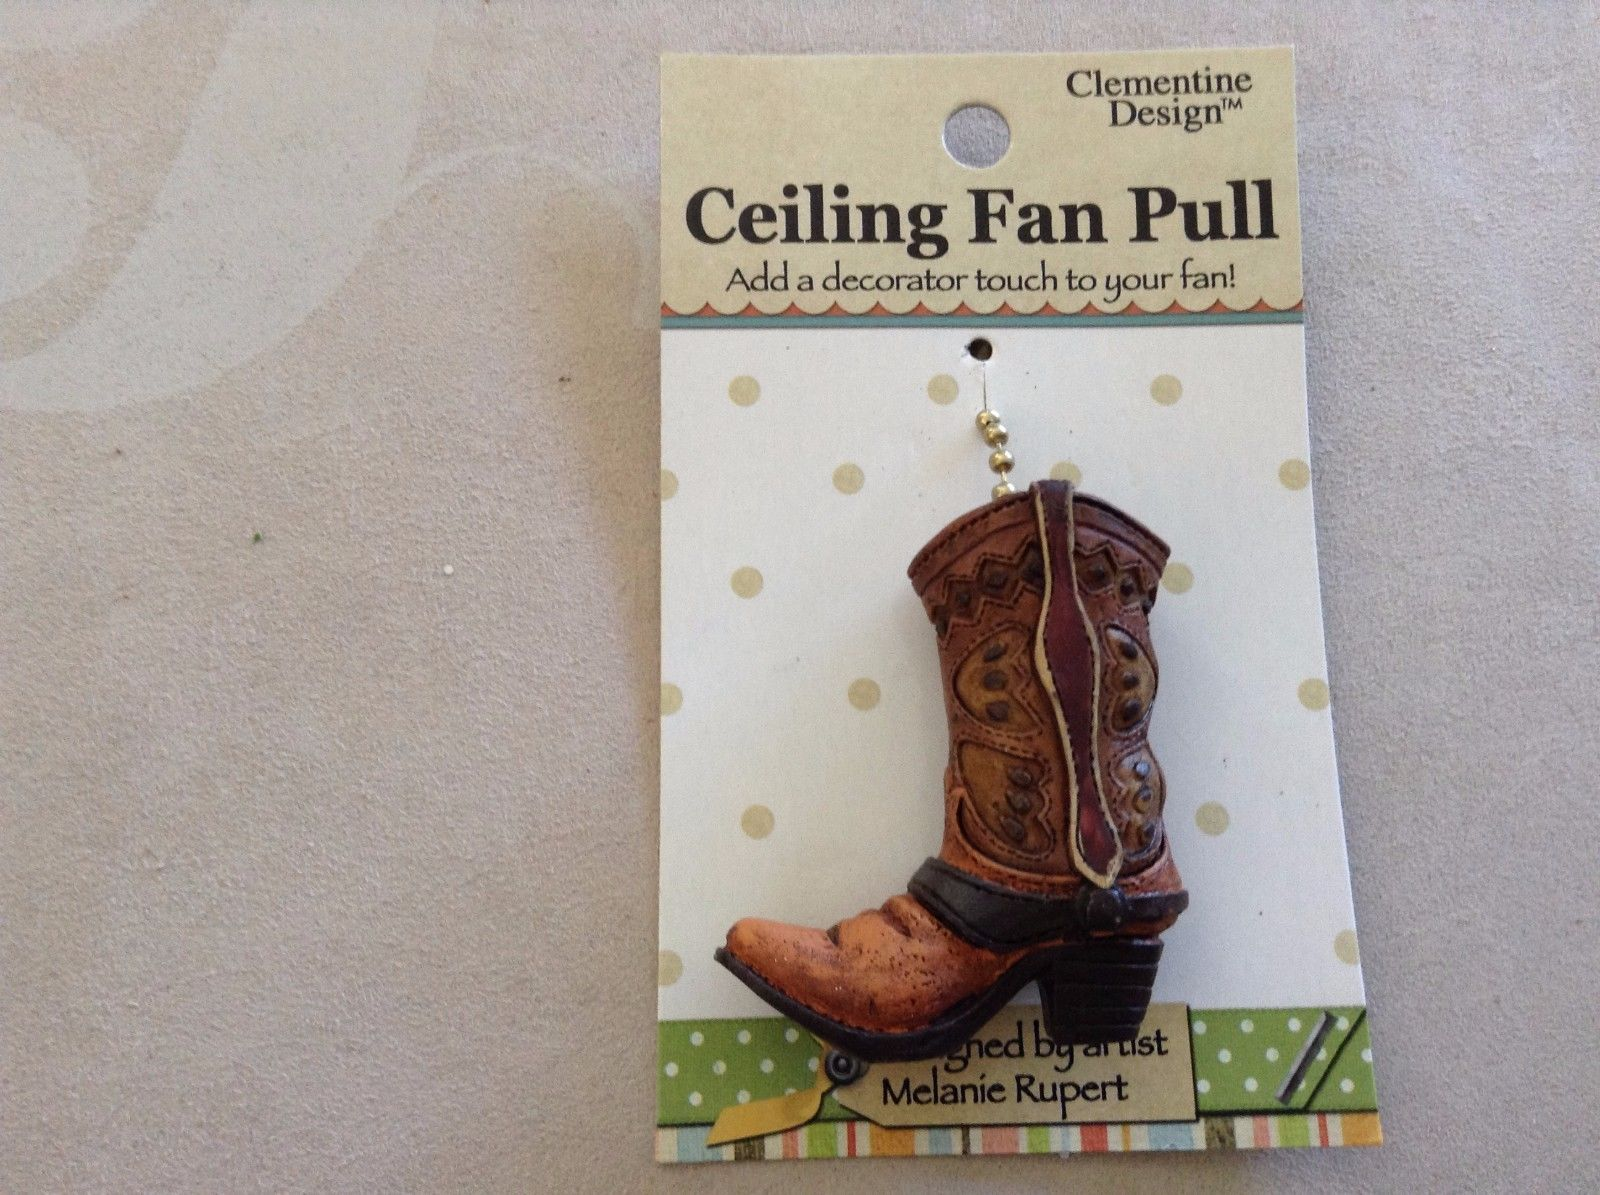 New Clementine Design Ceiling Fan Pull Cowboy Boots